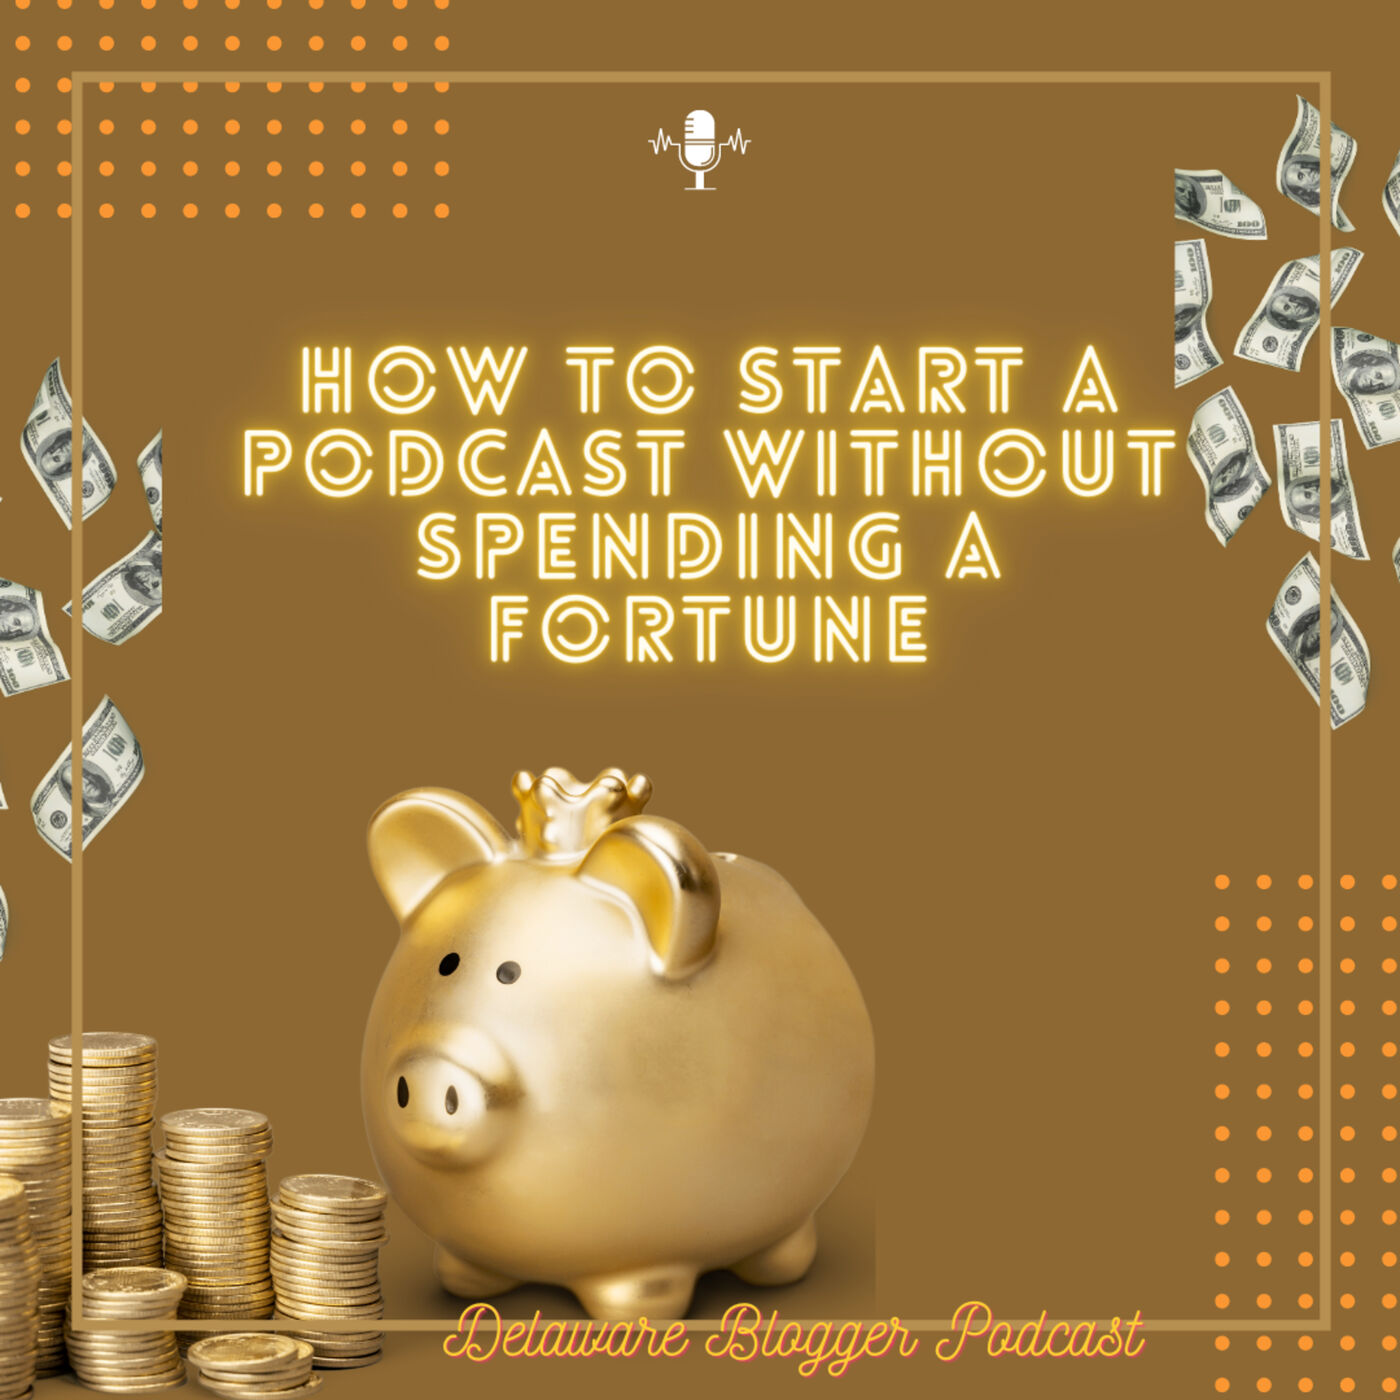 How to Start a Podcast Without Spending a Fortune Eps. #254